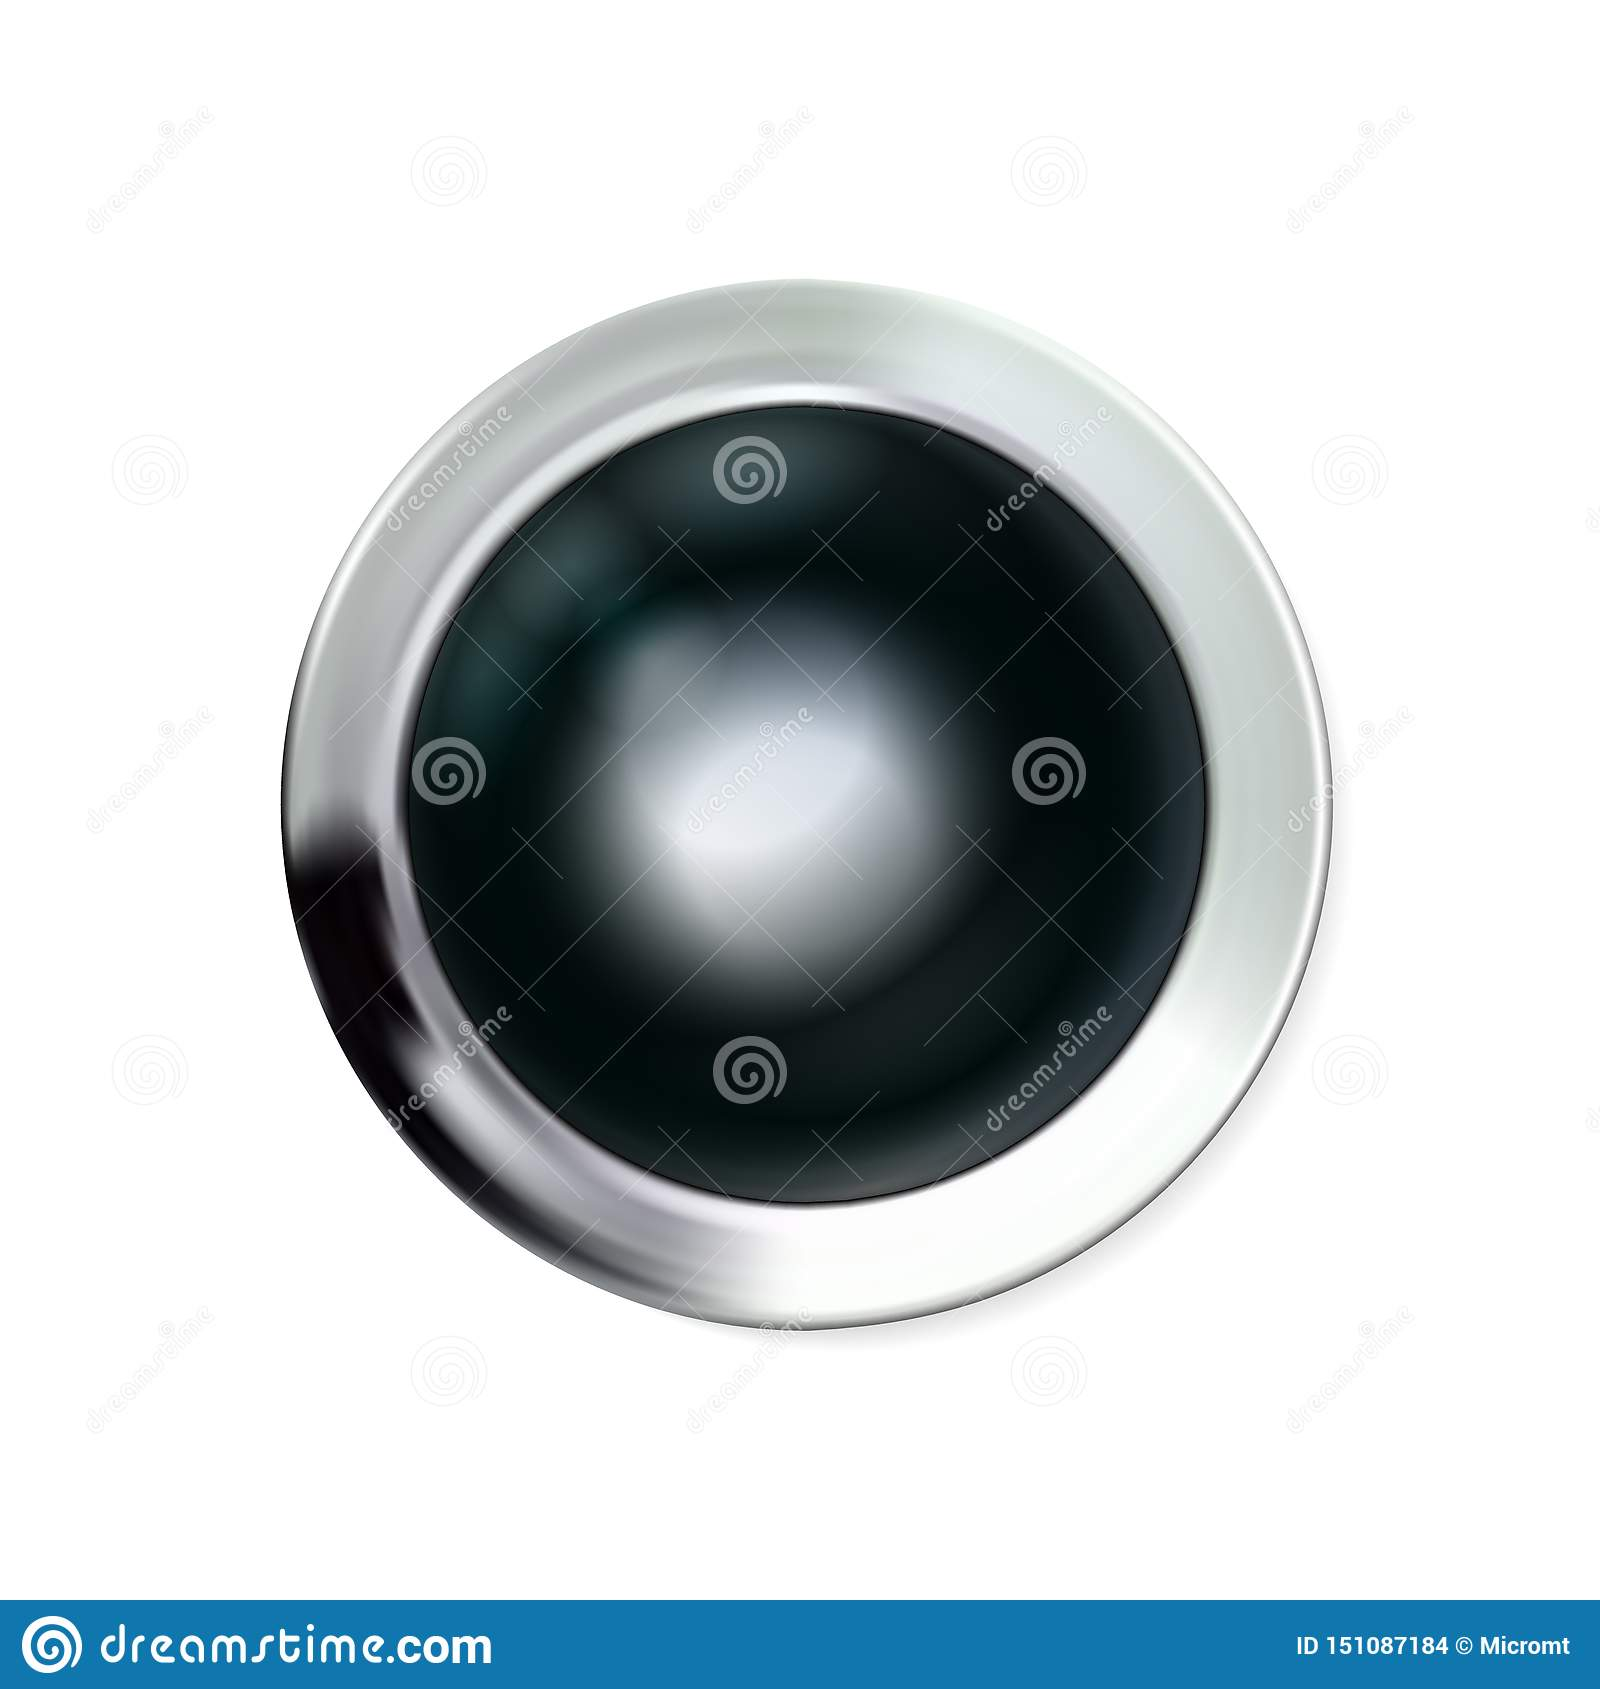 Glossy realistic chrome black button silvery. Circle geometric icon technology with shadows, stainless steel for logo, design